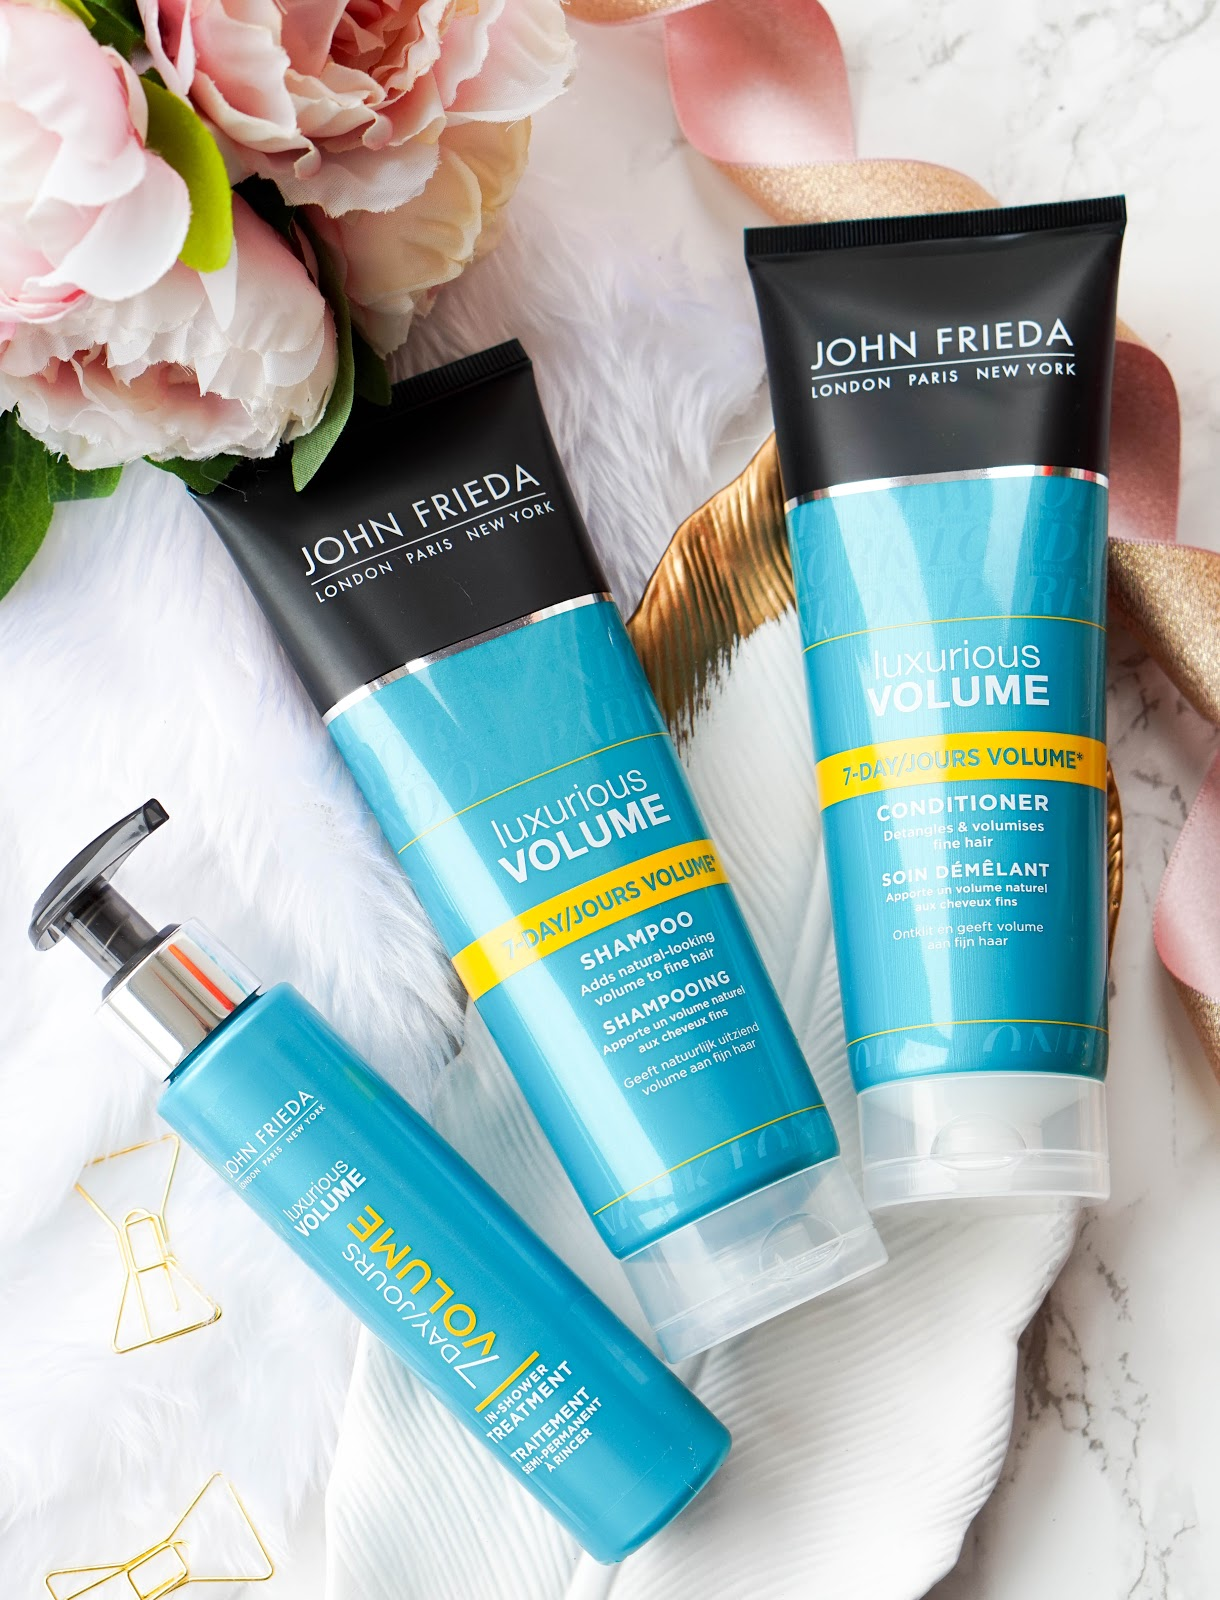 Time For Some TLC featuring John Frieda, Pixi Beauty, Aquis, Spacemask, Sanctuary